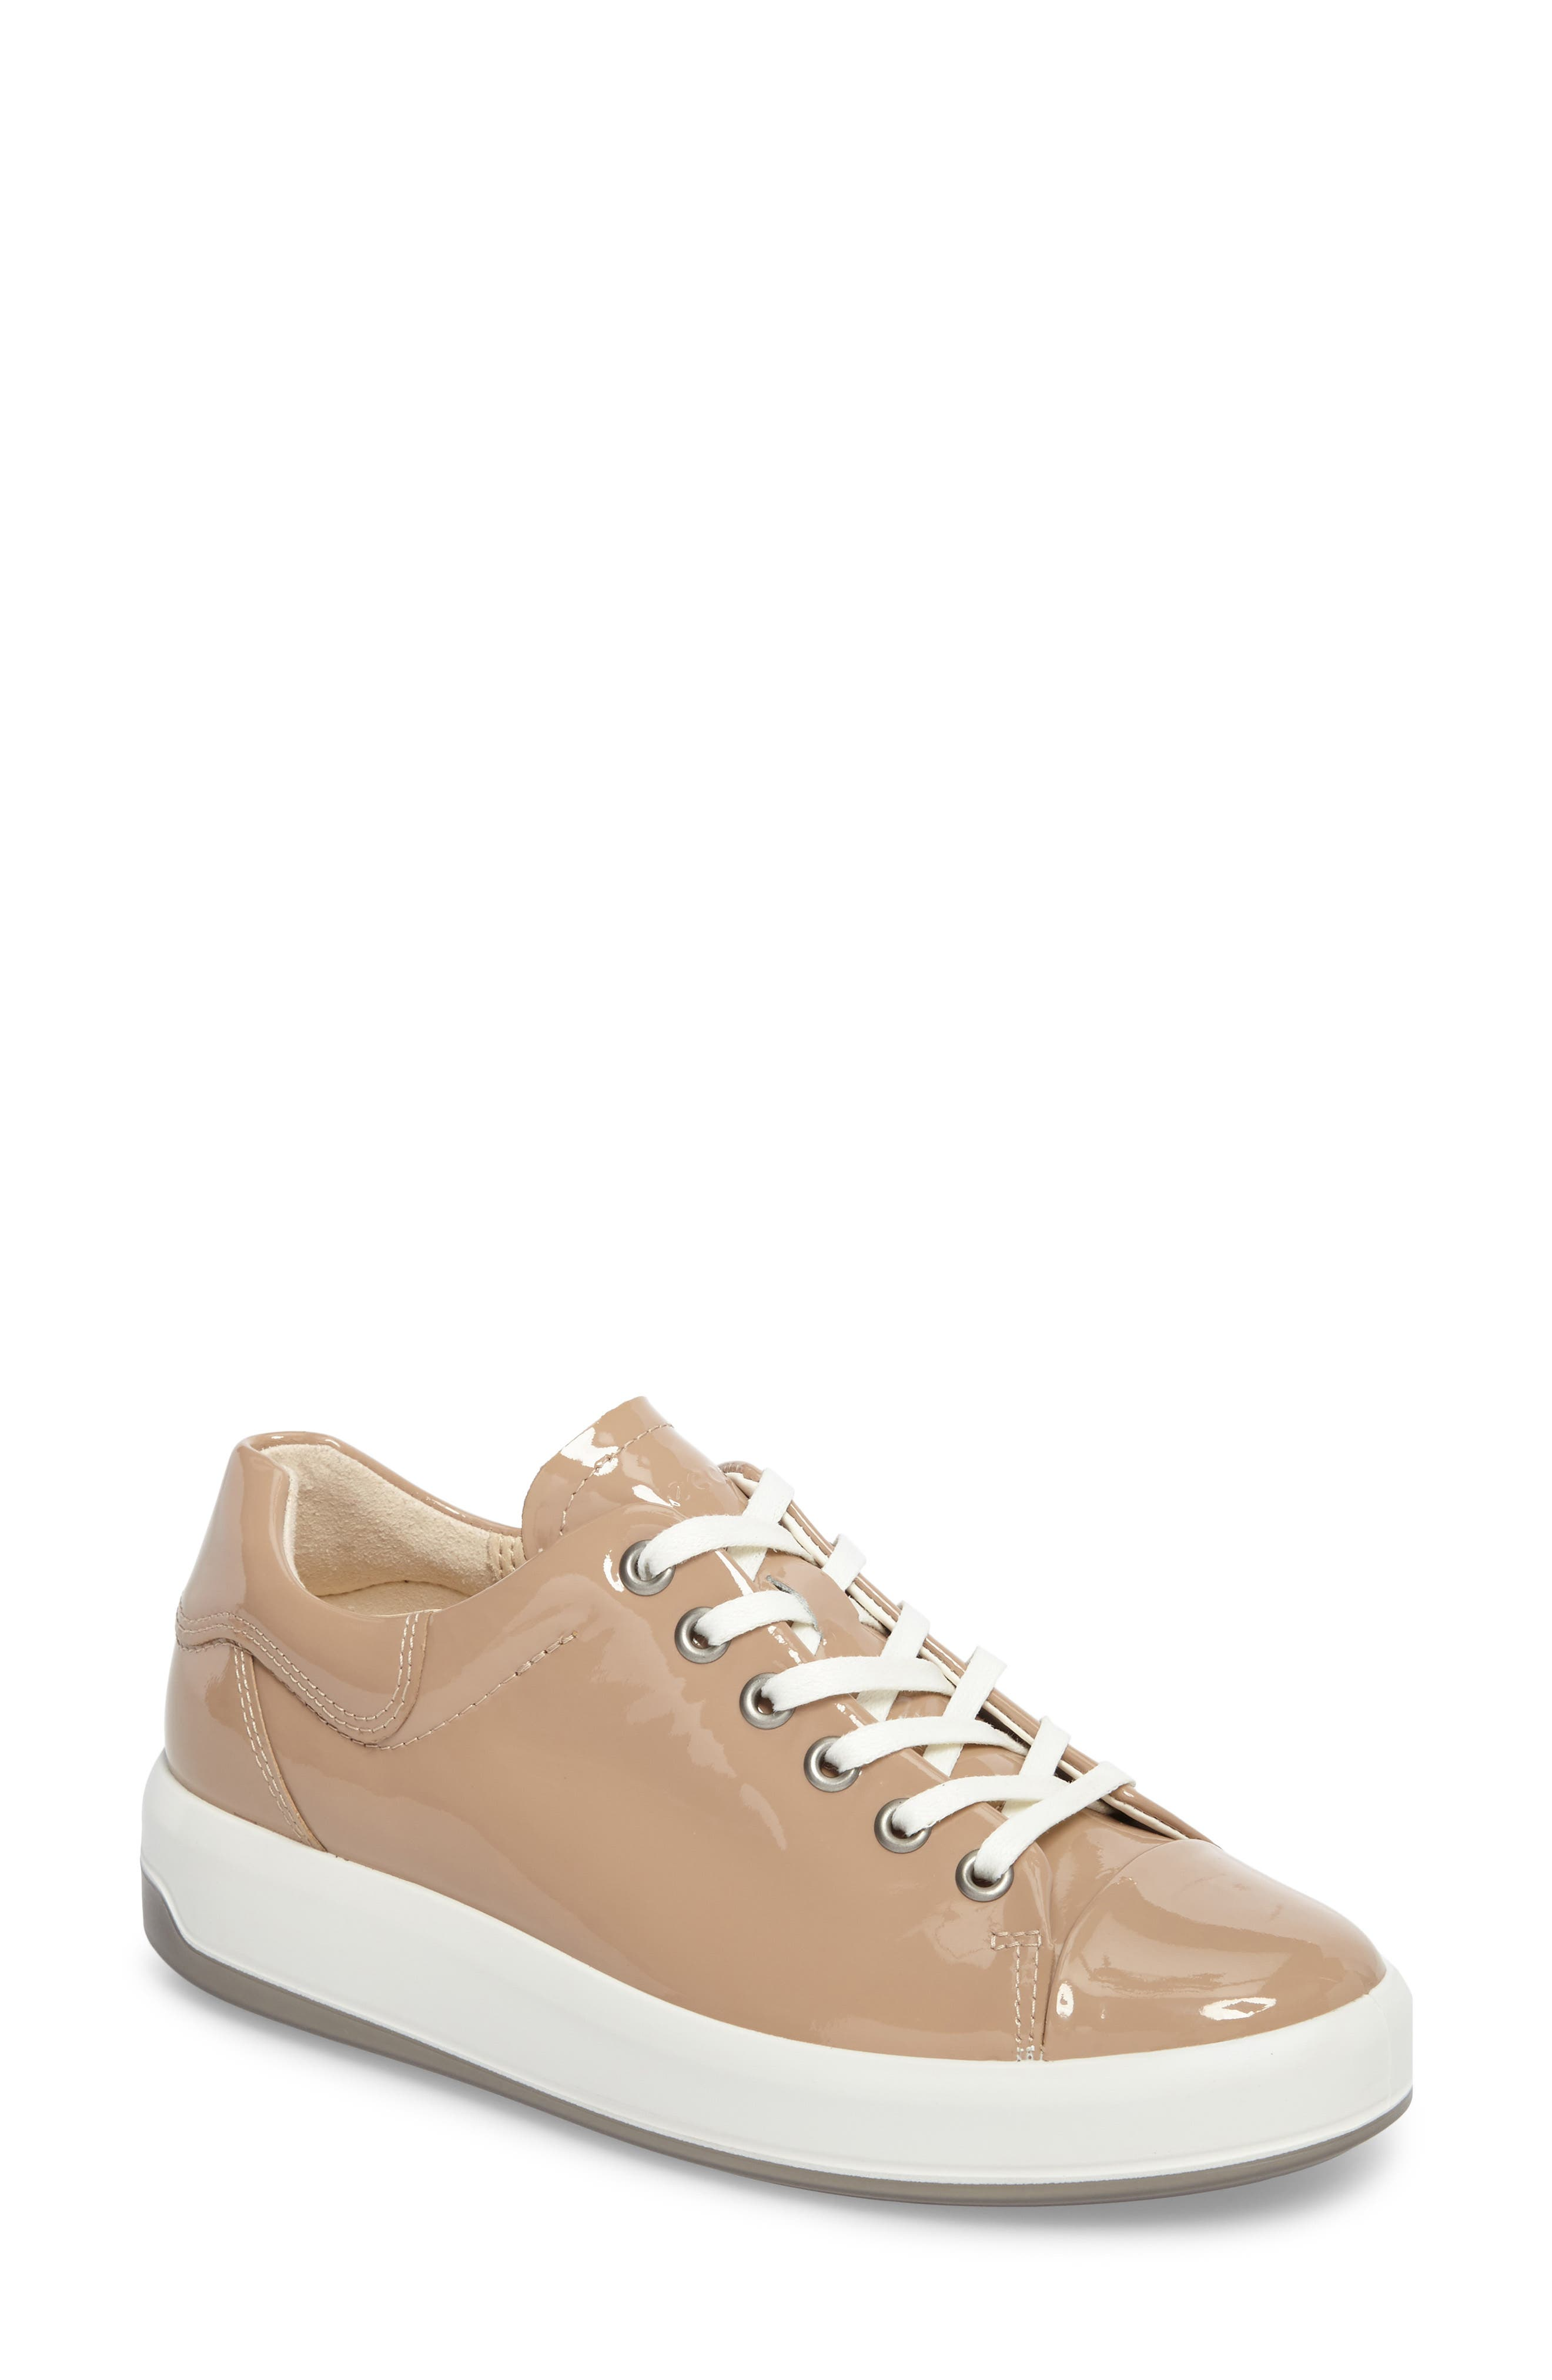 Soft 9 Sneaker,                             Main thumbnail 1, color,                             Ginger Leather